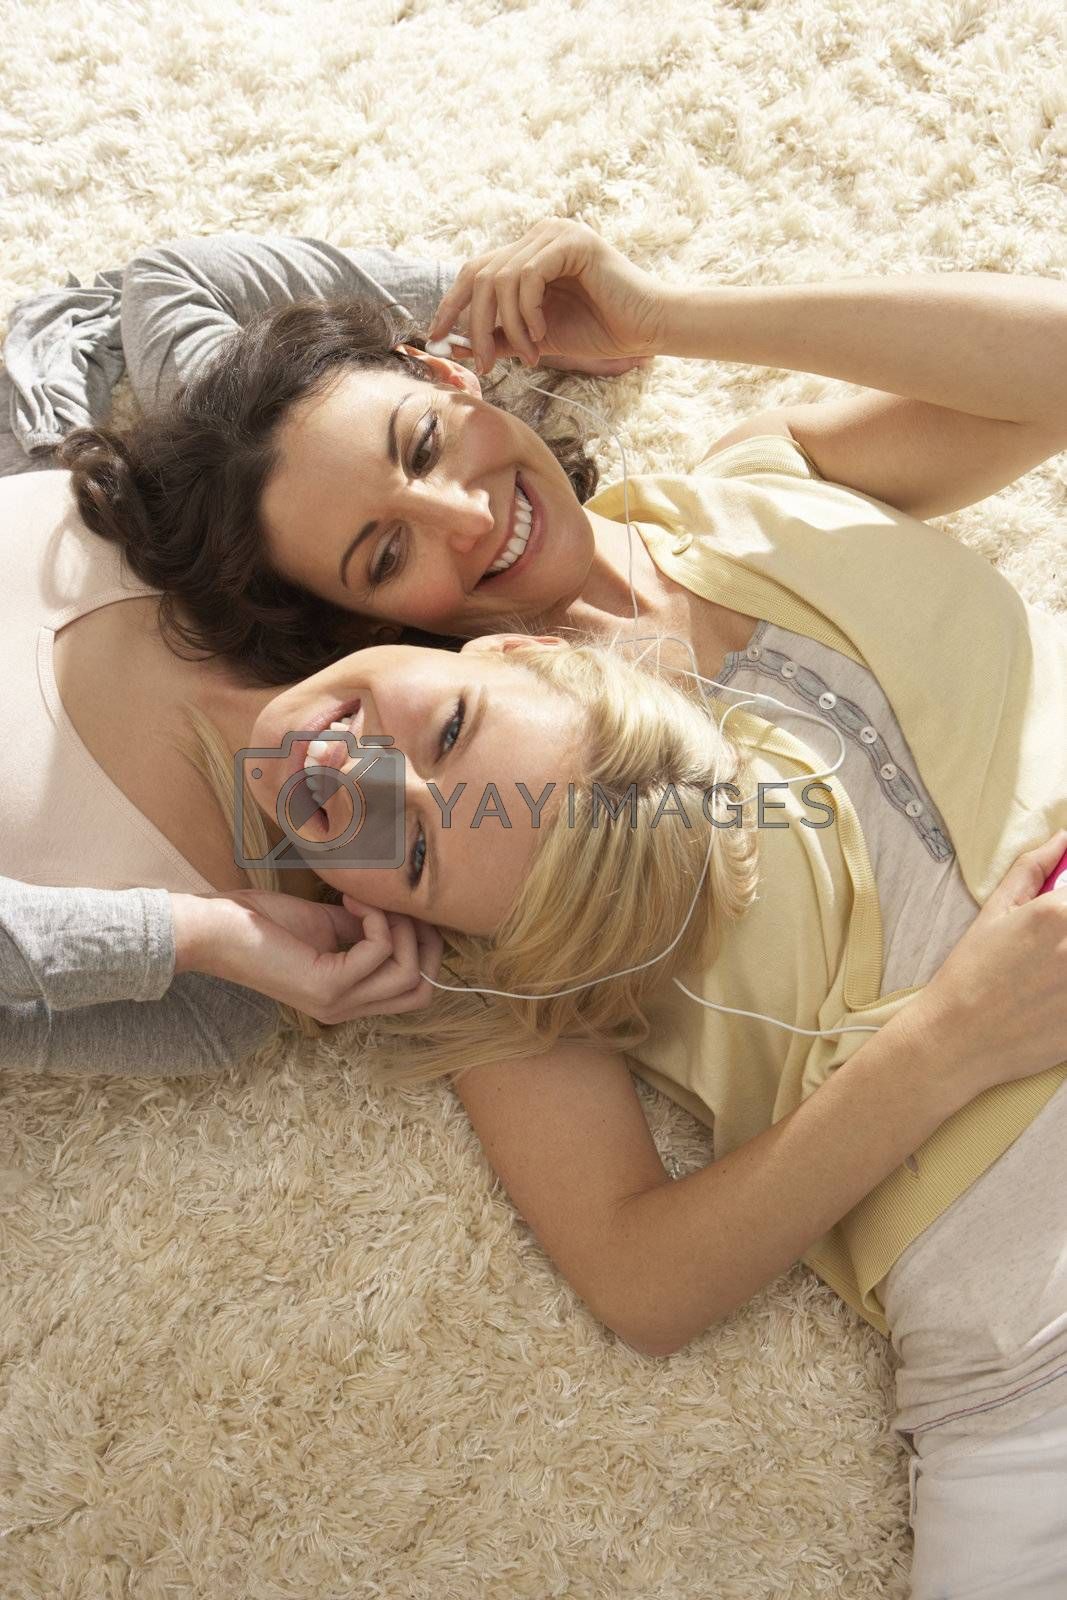 Two Women Listening To MP3 Player On Headphones Together Relaxing Laying On Rug At Home